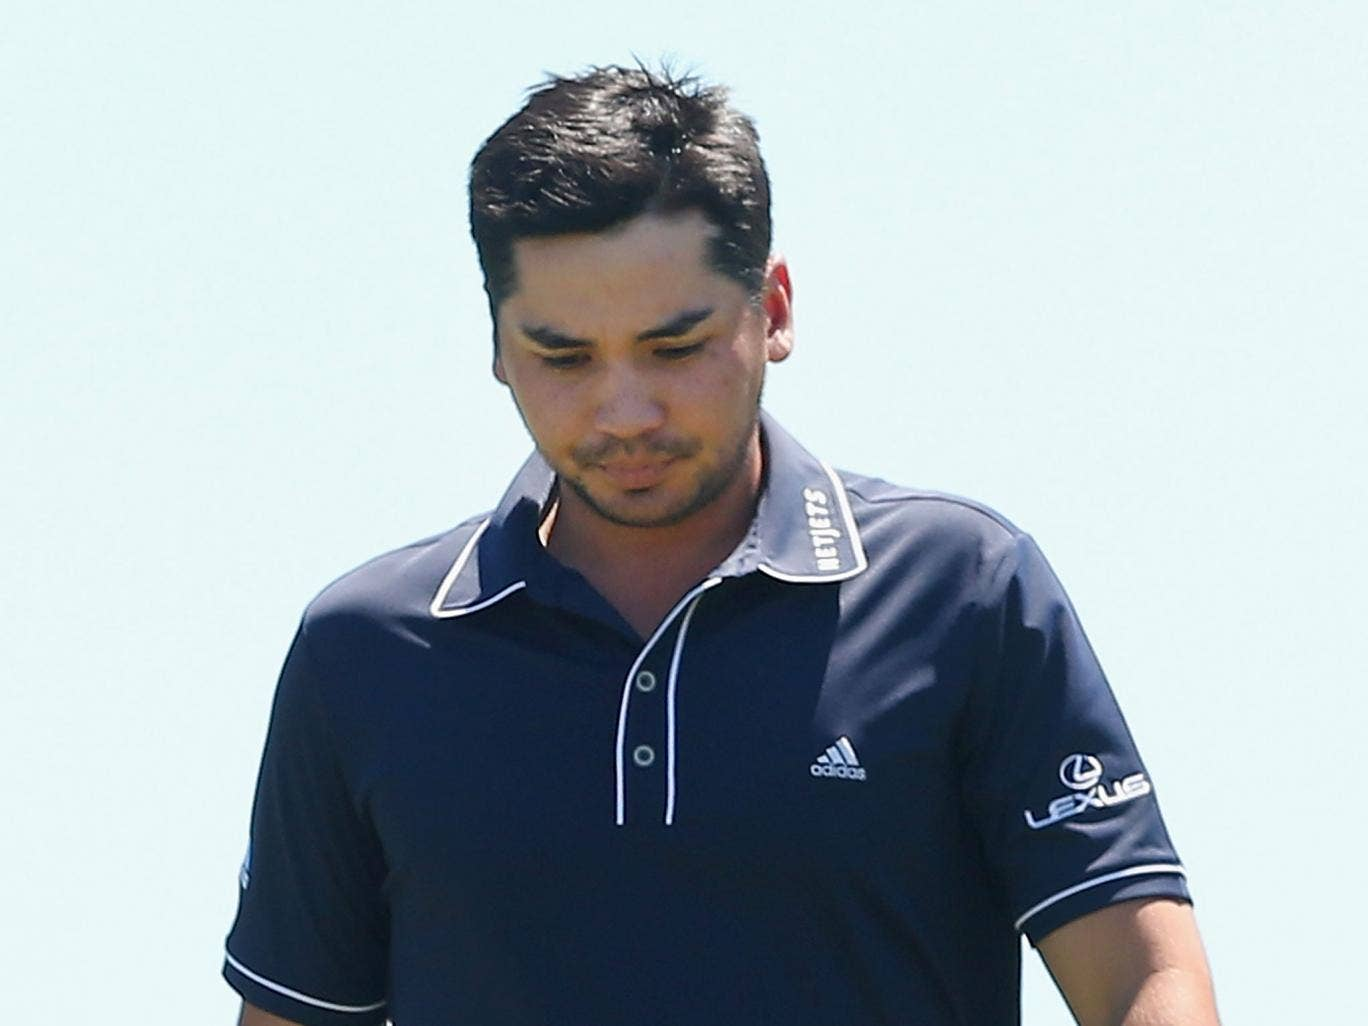 Jason Day has suffered tragedy from the Philippines typhoon